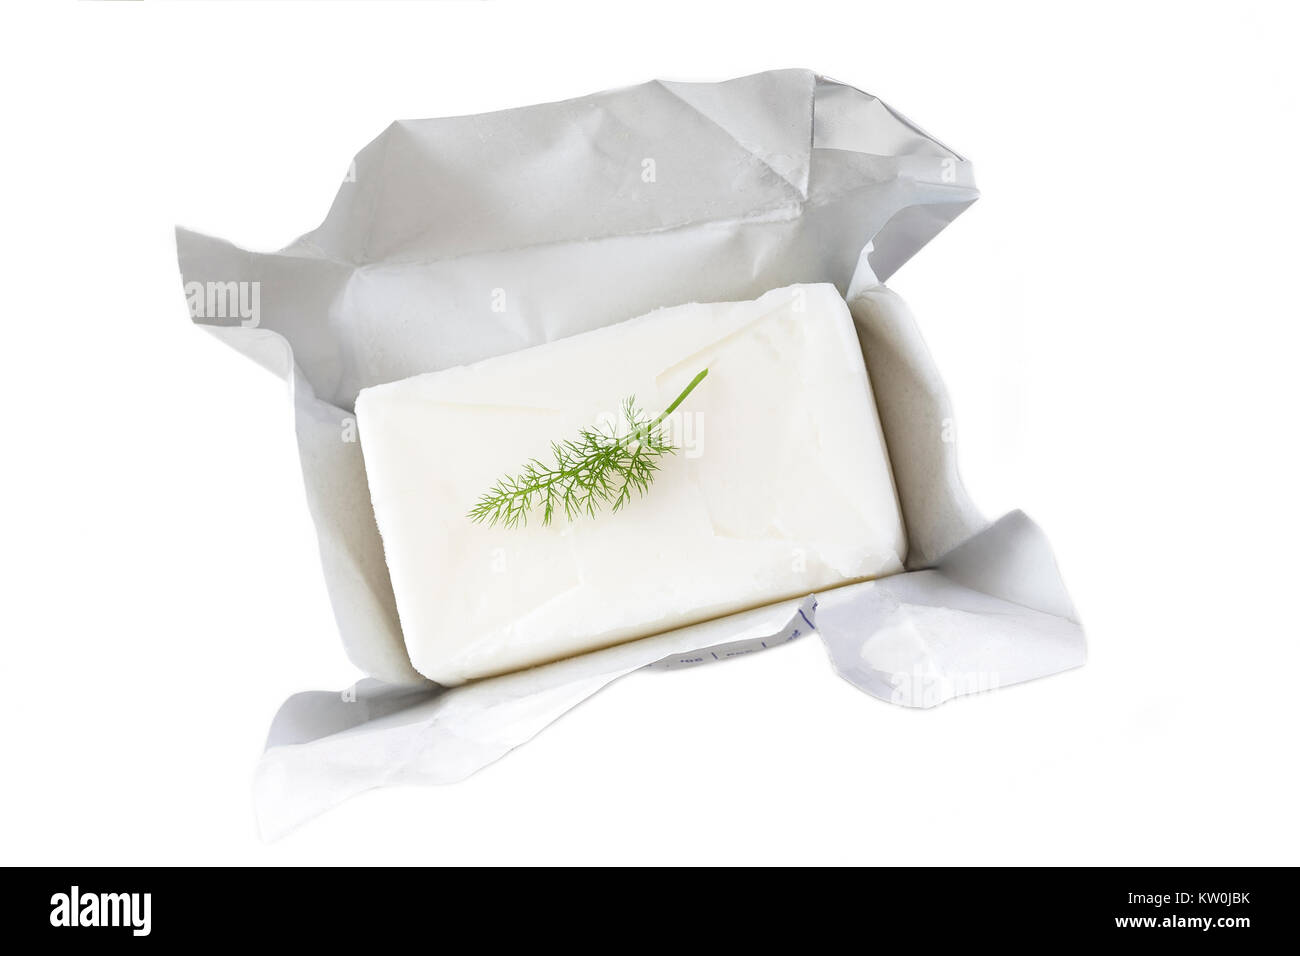 block of pork lard unwrapped , open with parsley on white background - Stock Image